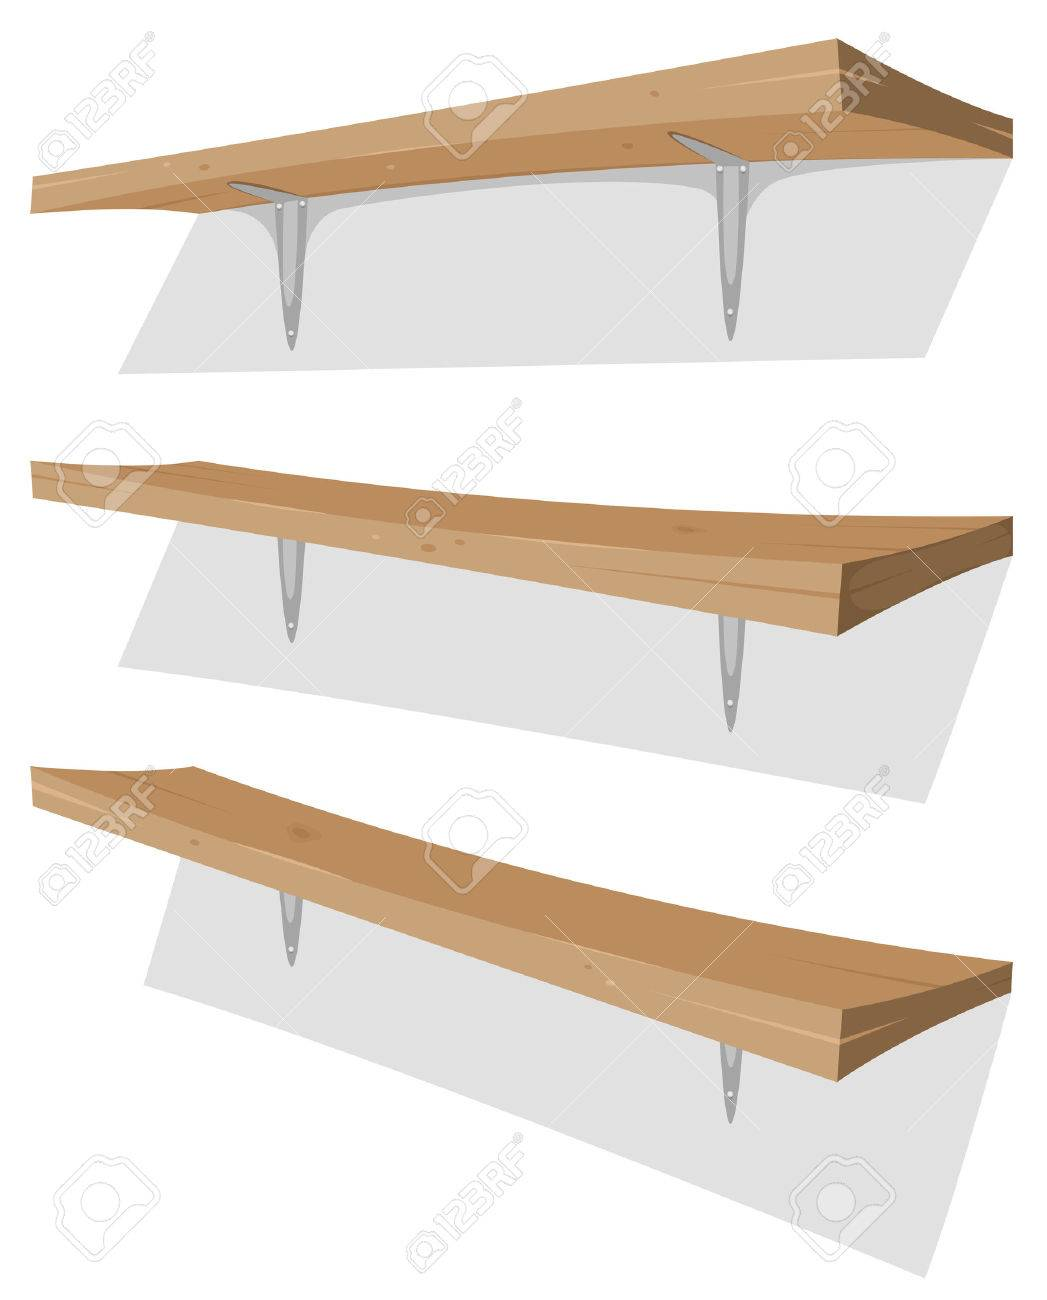 Illustration Of Cartoon Garage Wood Storage Shelves Set On The Wall With  Bracket Stock Vector